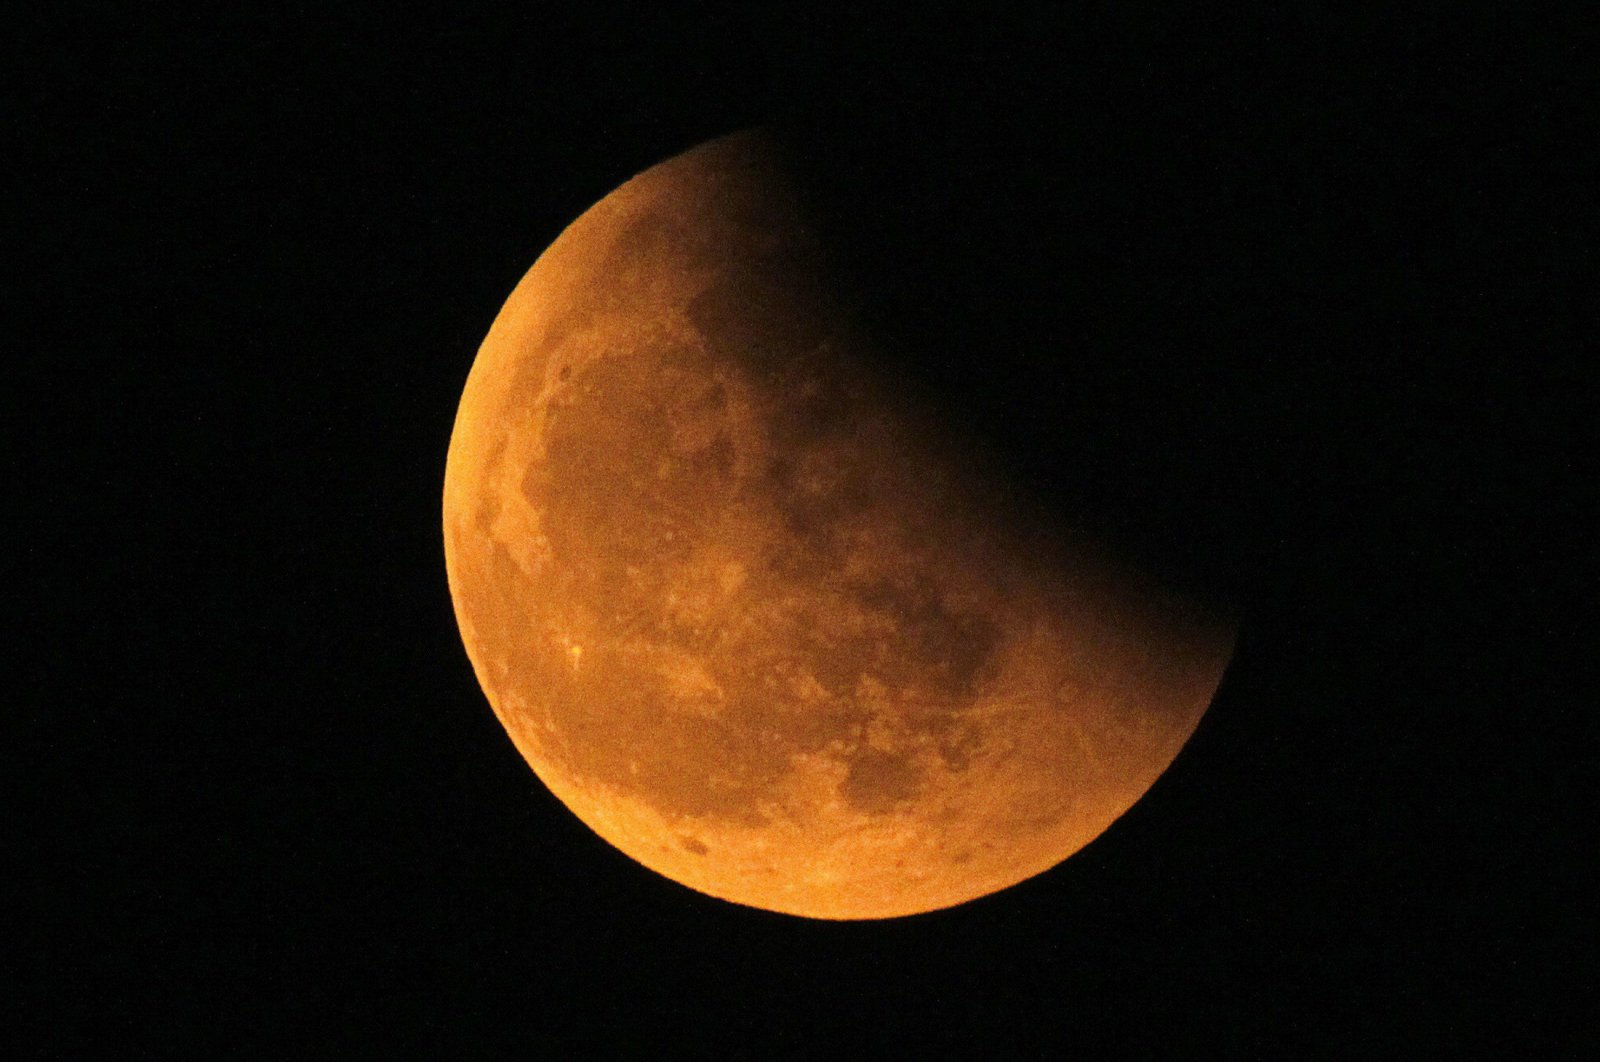 The shadow of the Earth is seen on the Moon during a total lunar eclipse, Shanghai, Dec. 21, 2010. (Reuters File Photo)